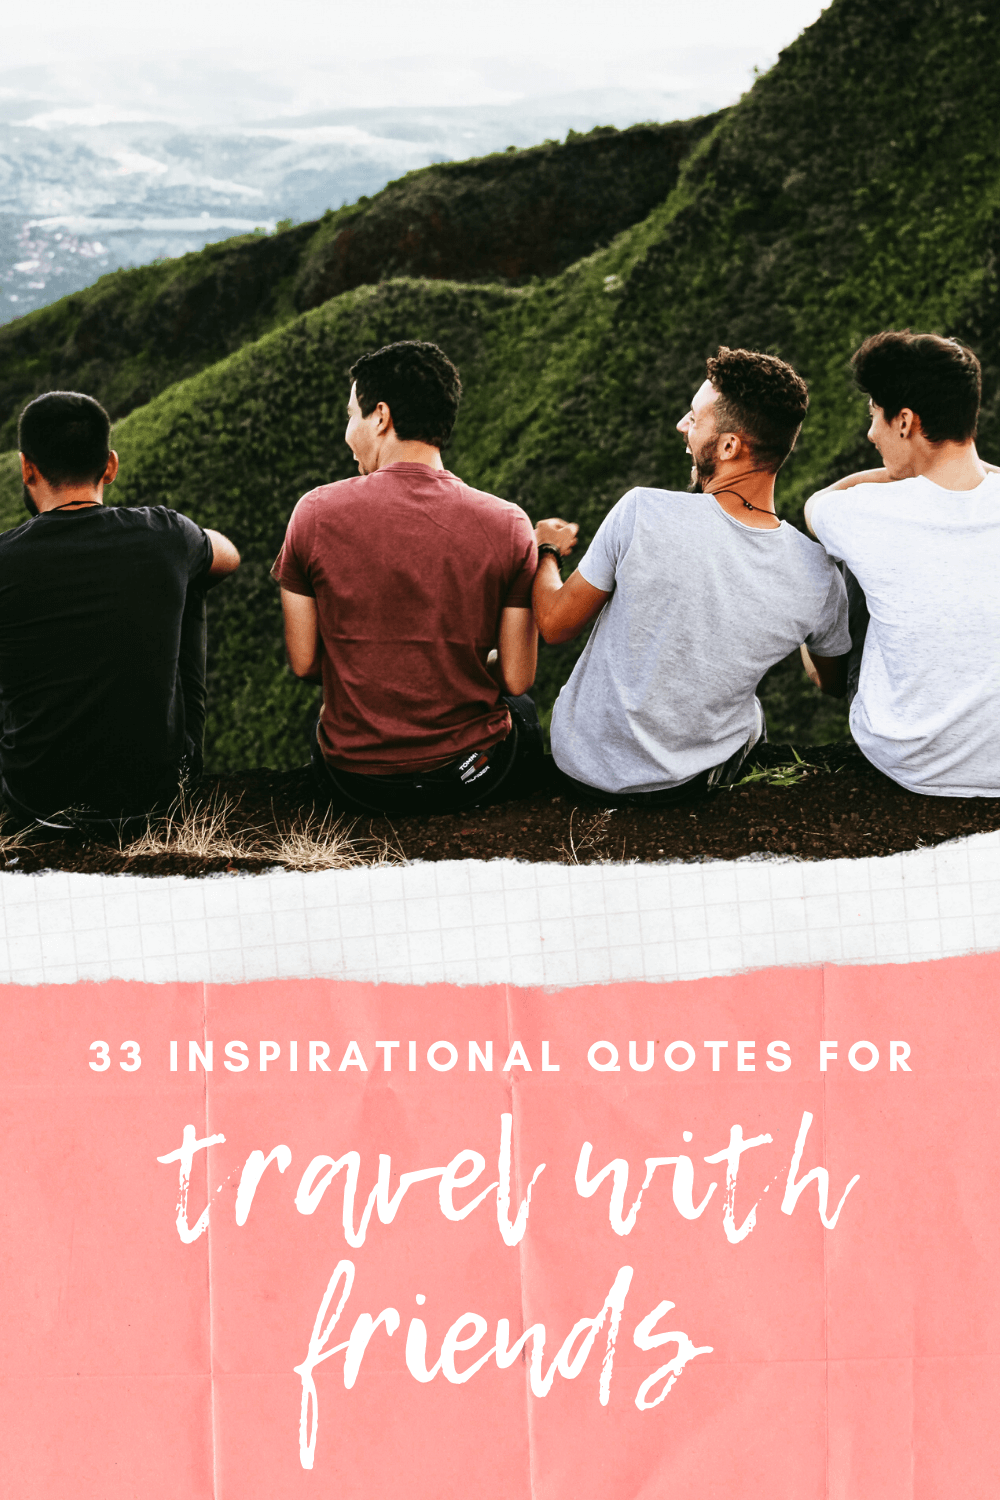 Quotes about travelling with friends and travel with friends captions